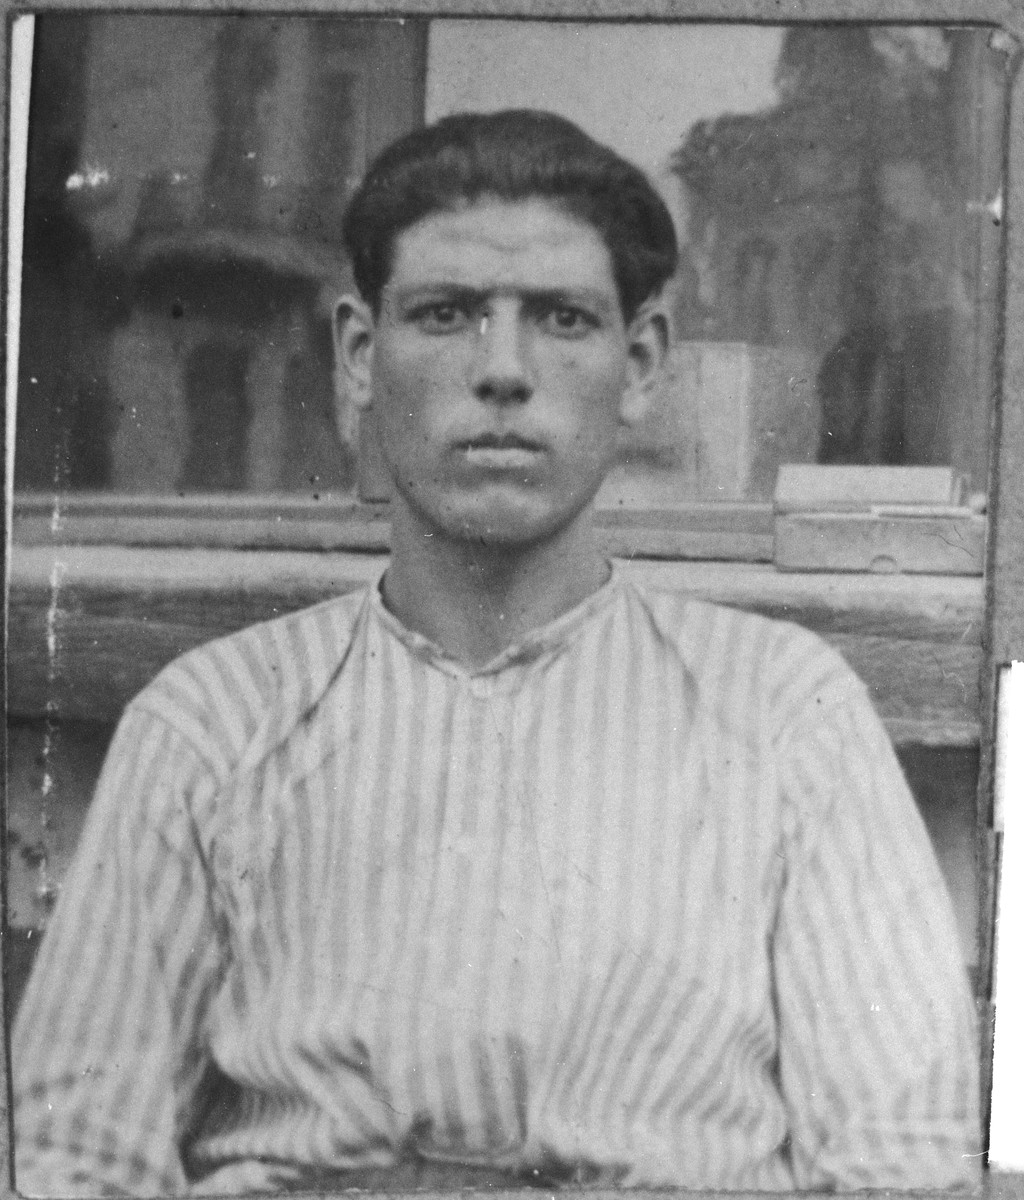 Portrait of Yakov Koen, son of Aron Koen.  He was a carpenter.  He lived at Karagoryeva 64 in Bitola.